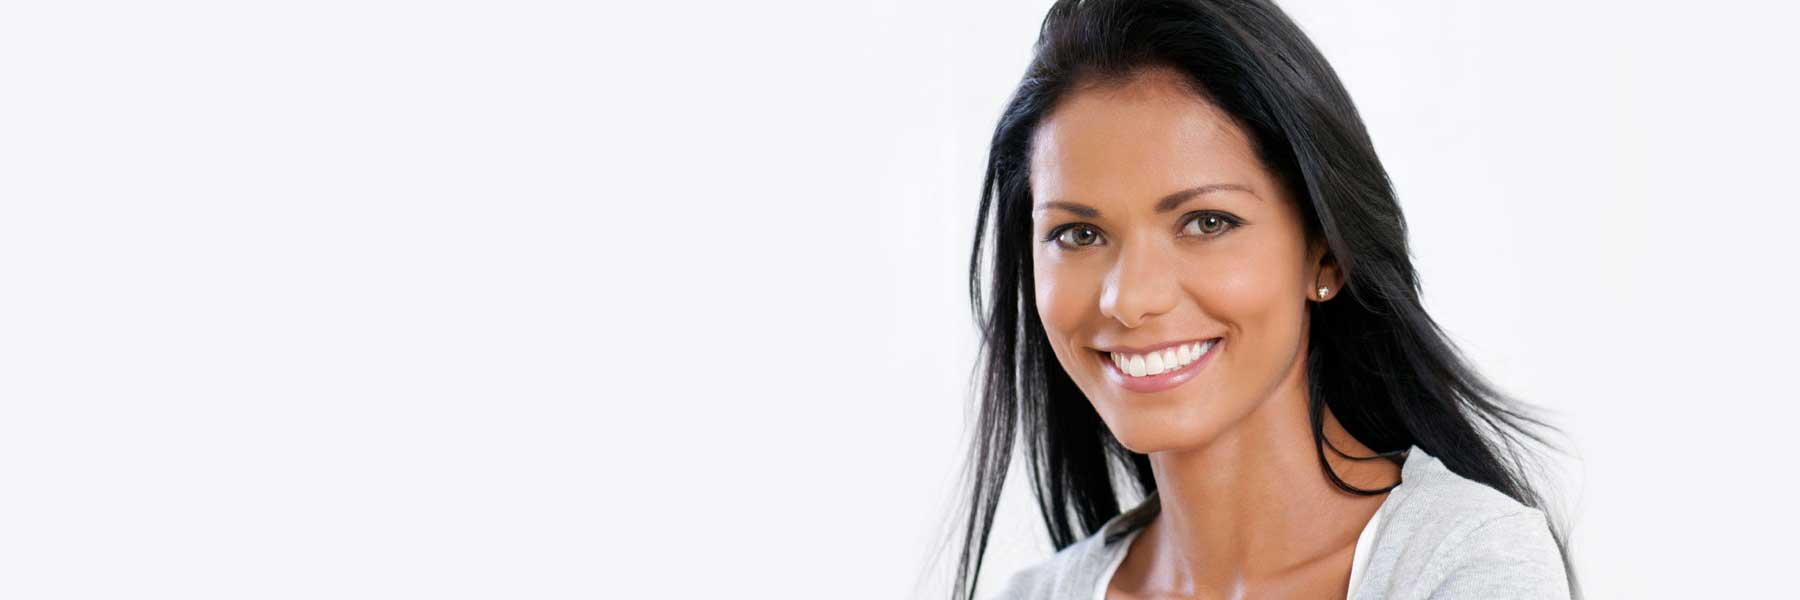 professional teeth whitening | boise id